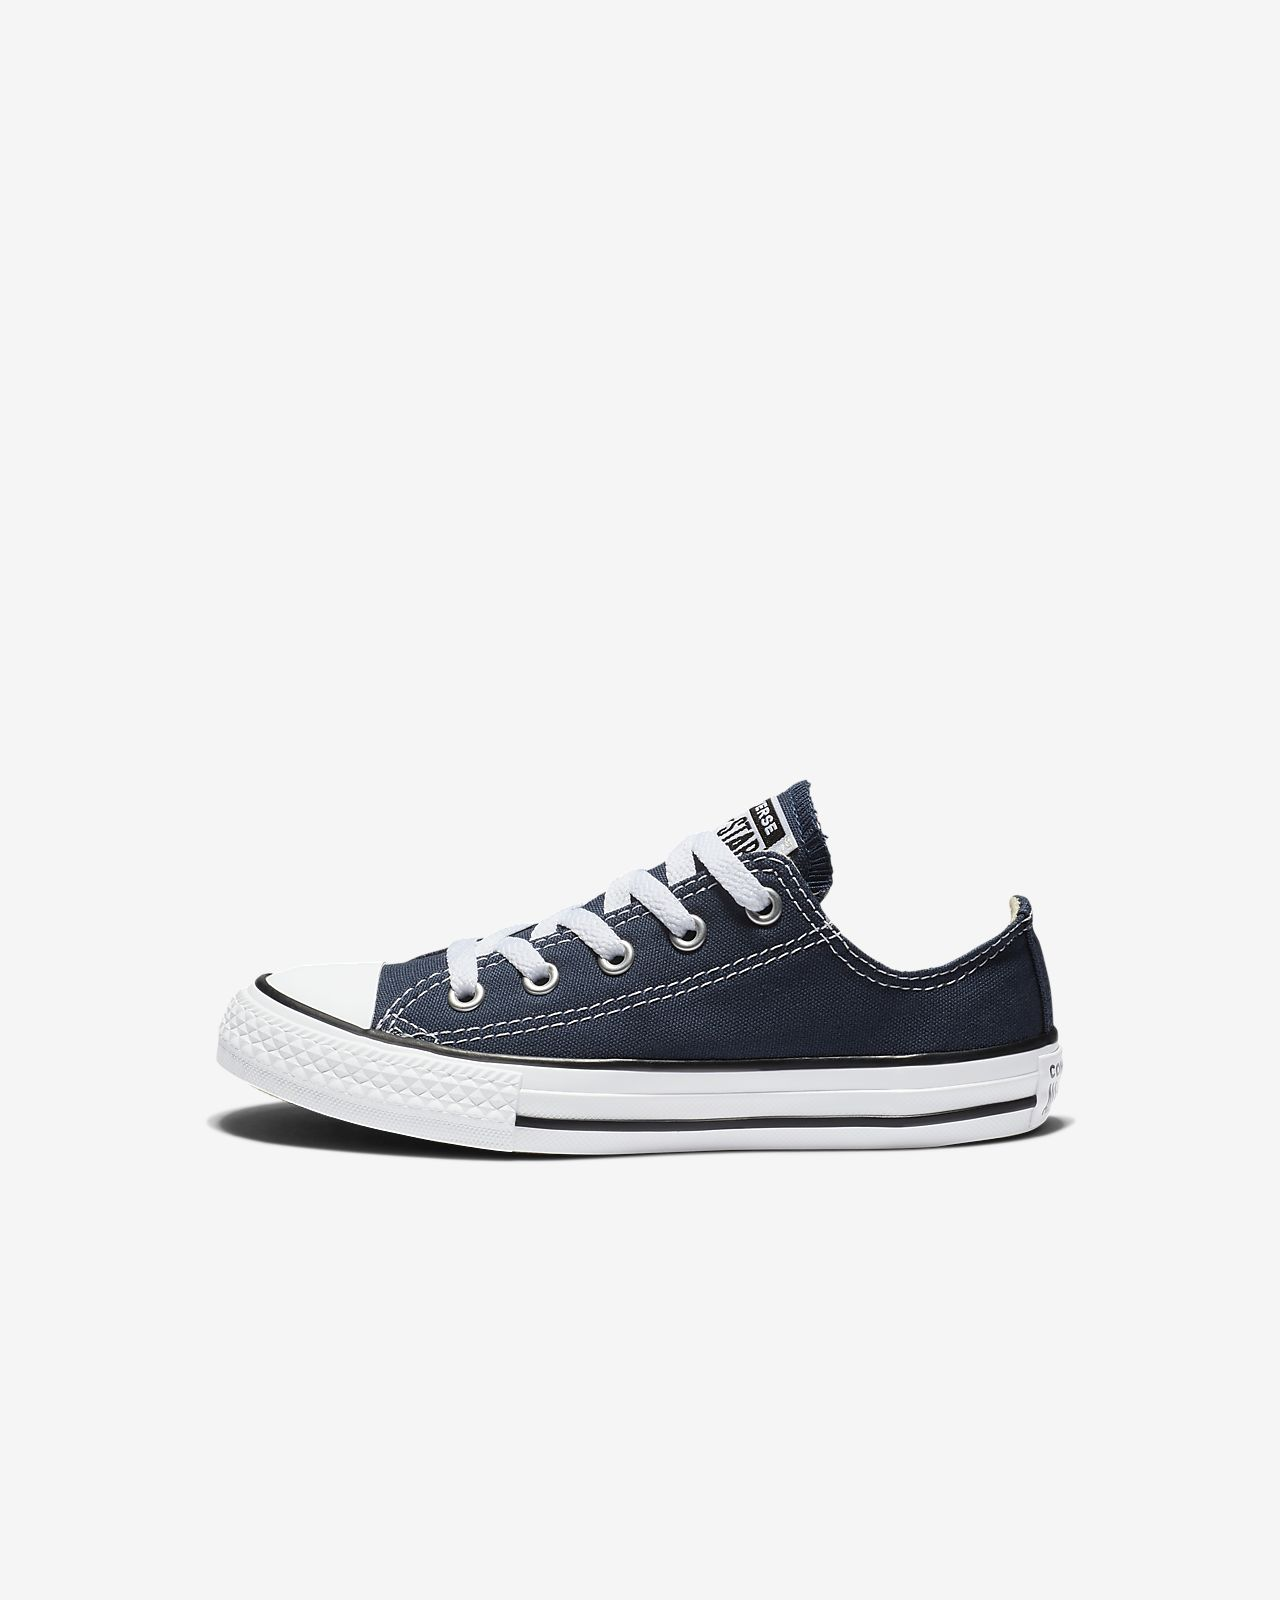 ccad6bac21f0 Converse Chuck Taylor All Star Low Top (10.5c-3y) Little Kids  Shoe ...